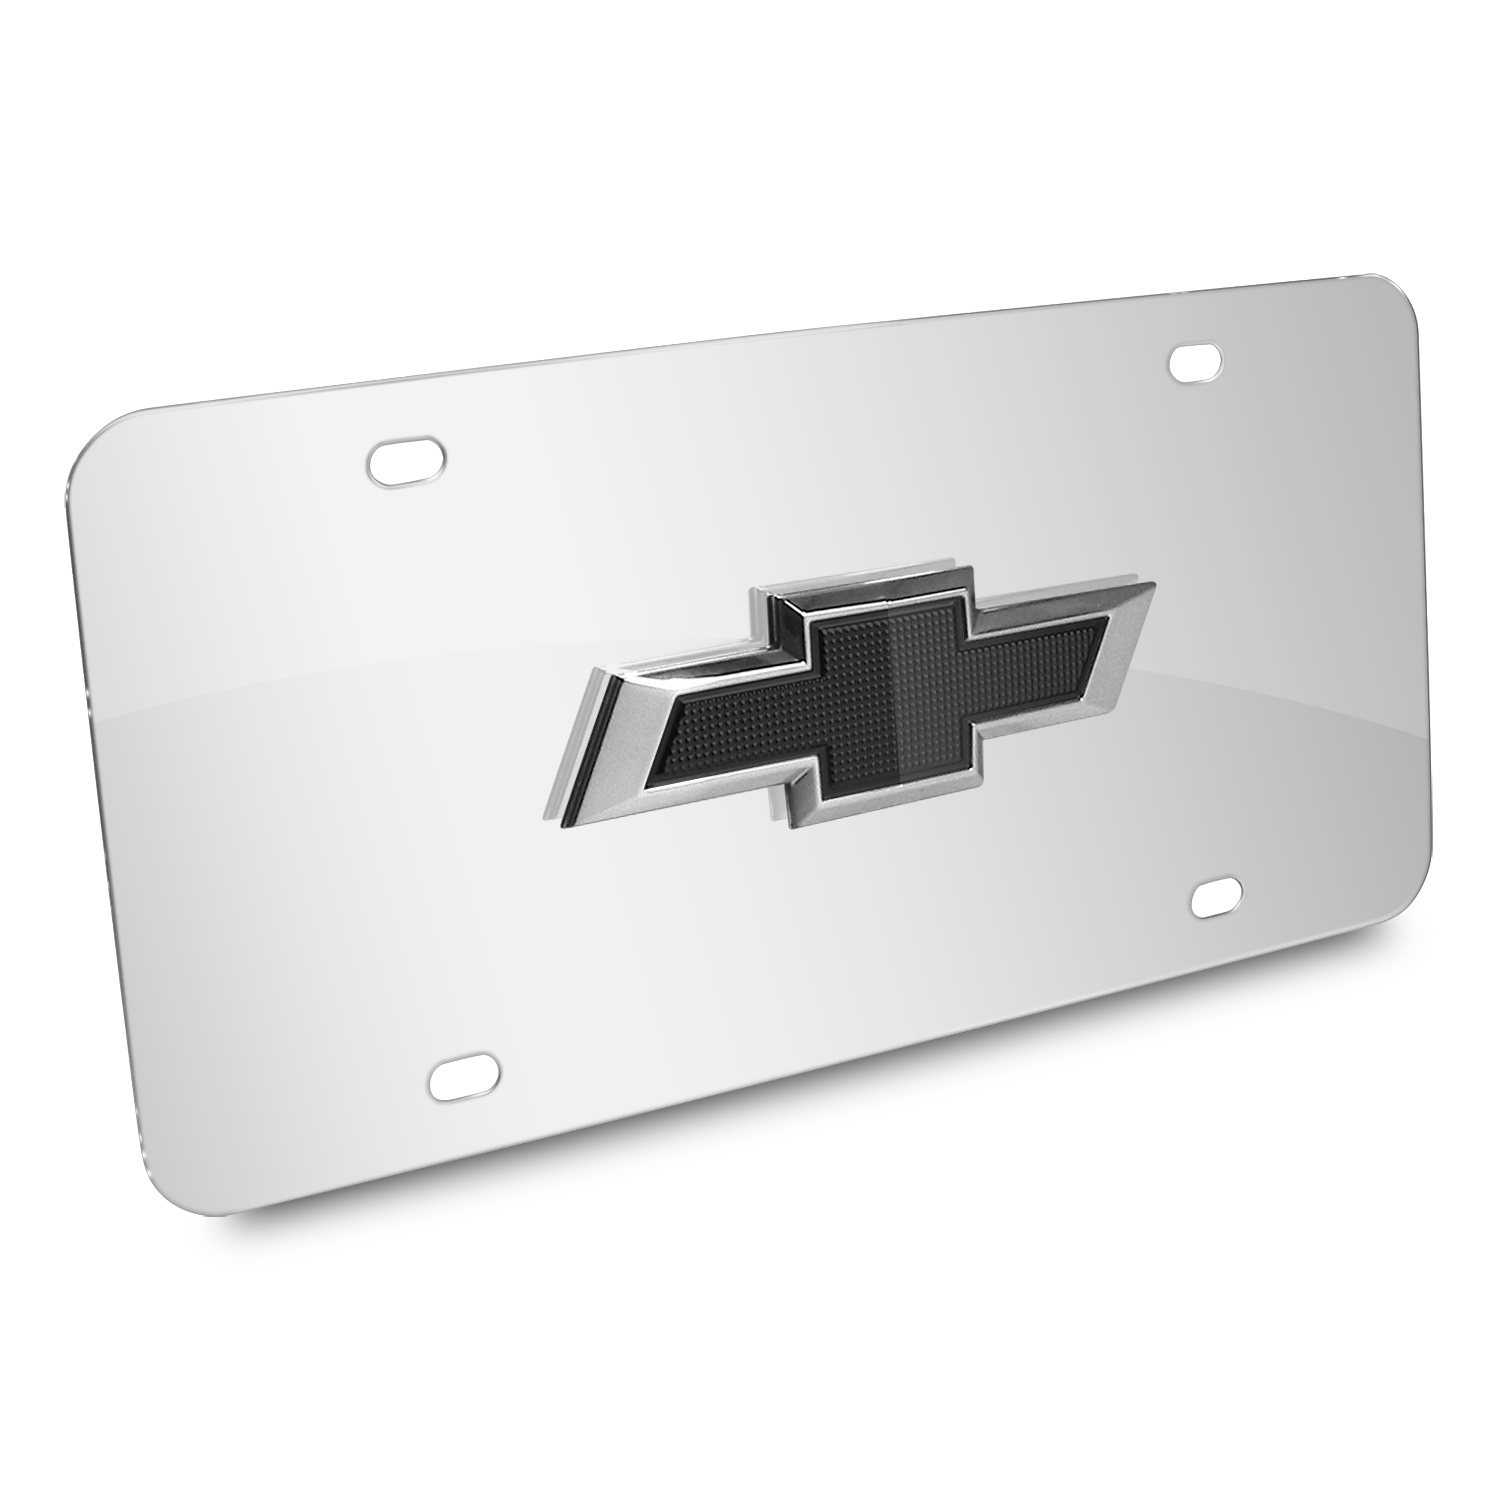 Chevrolet Black Bowtie 3D Logo Chrome Stainless Steel License Plate